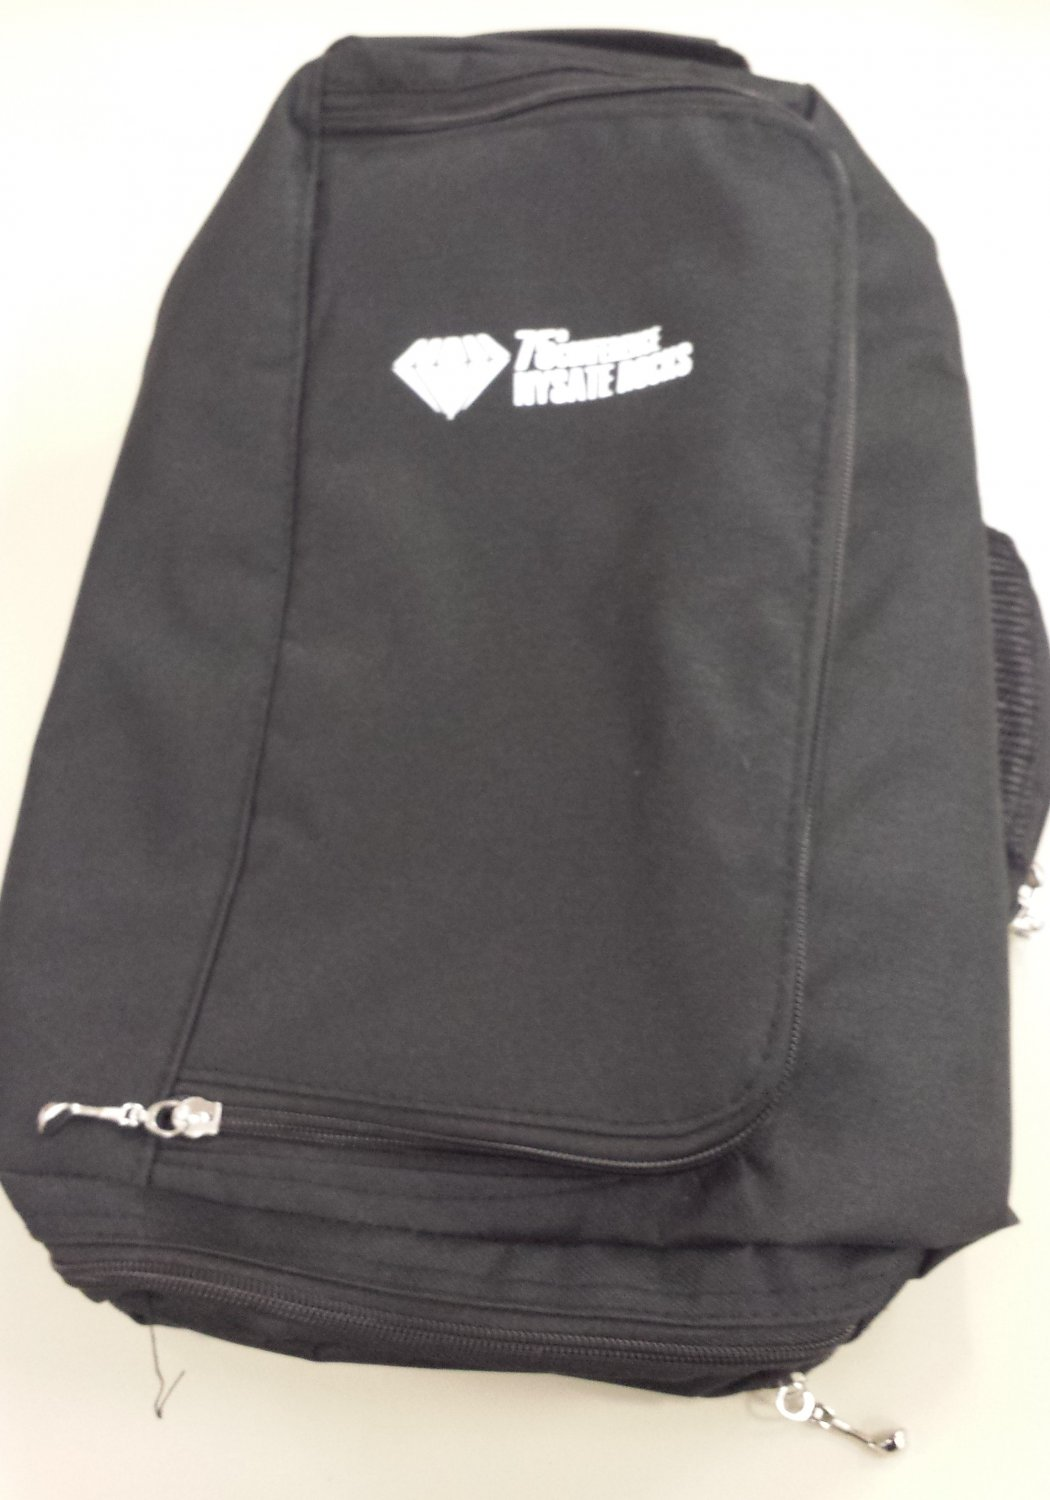 Travel shoe bag with NYSATE logo